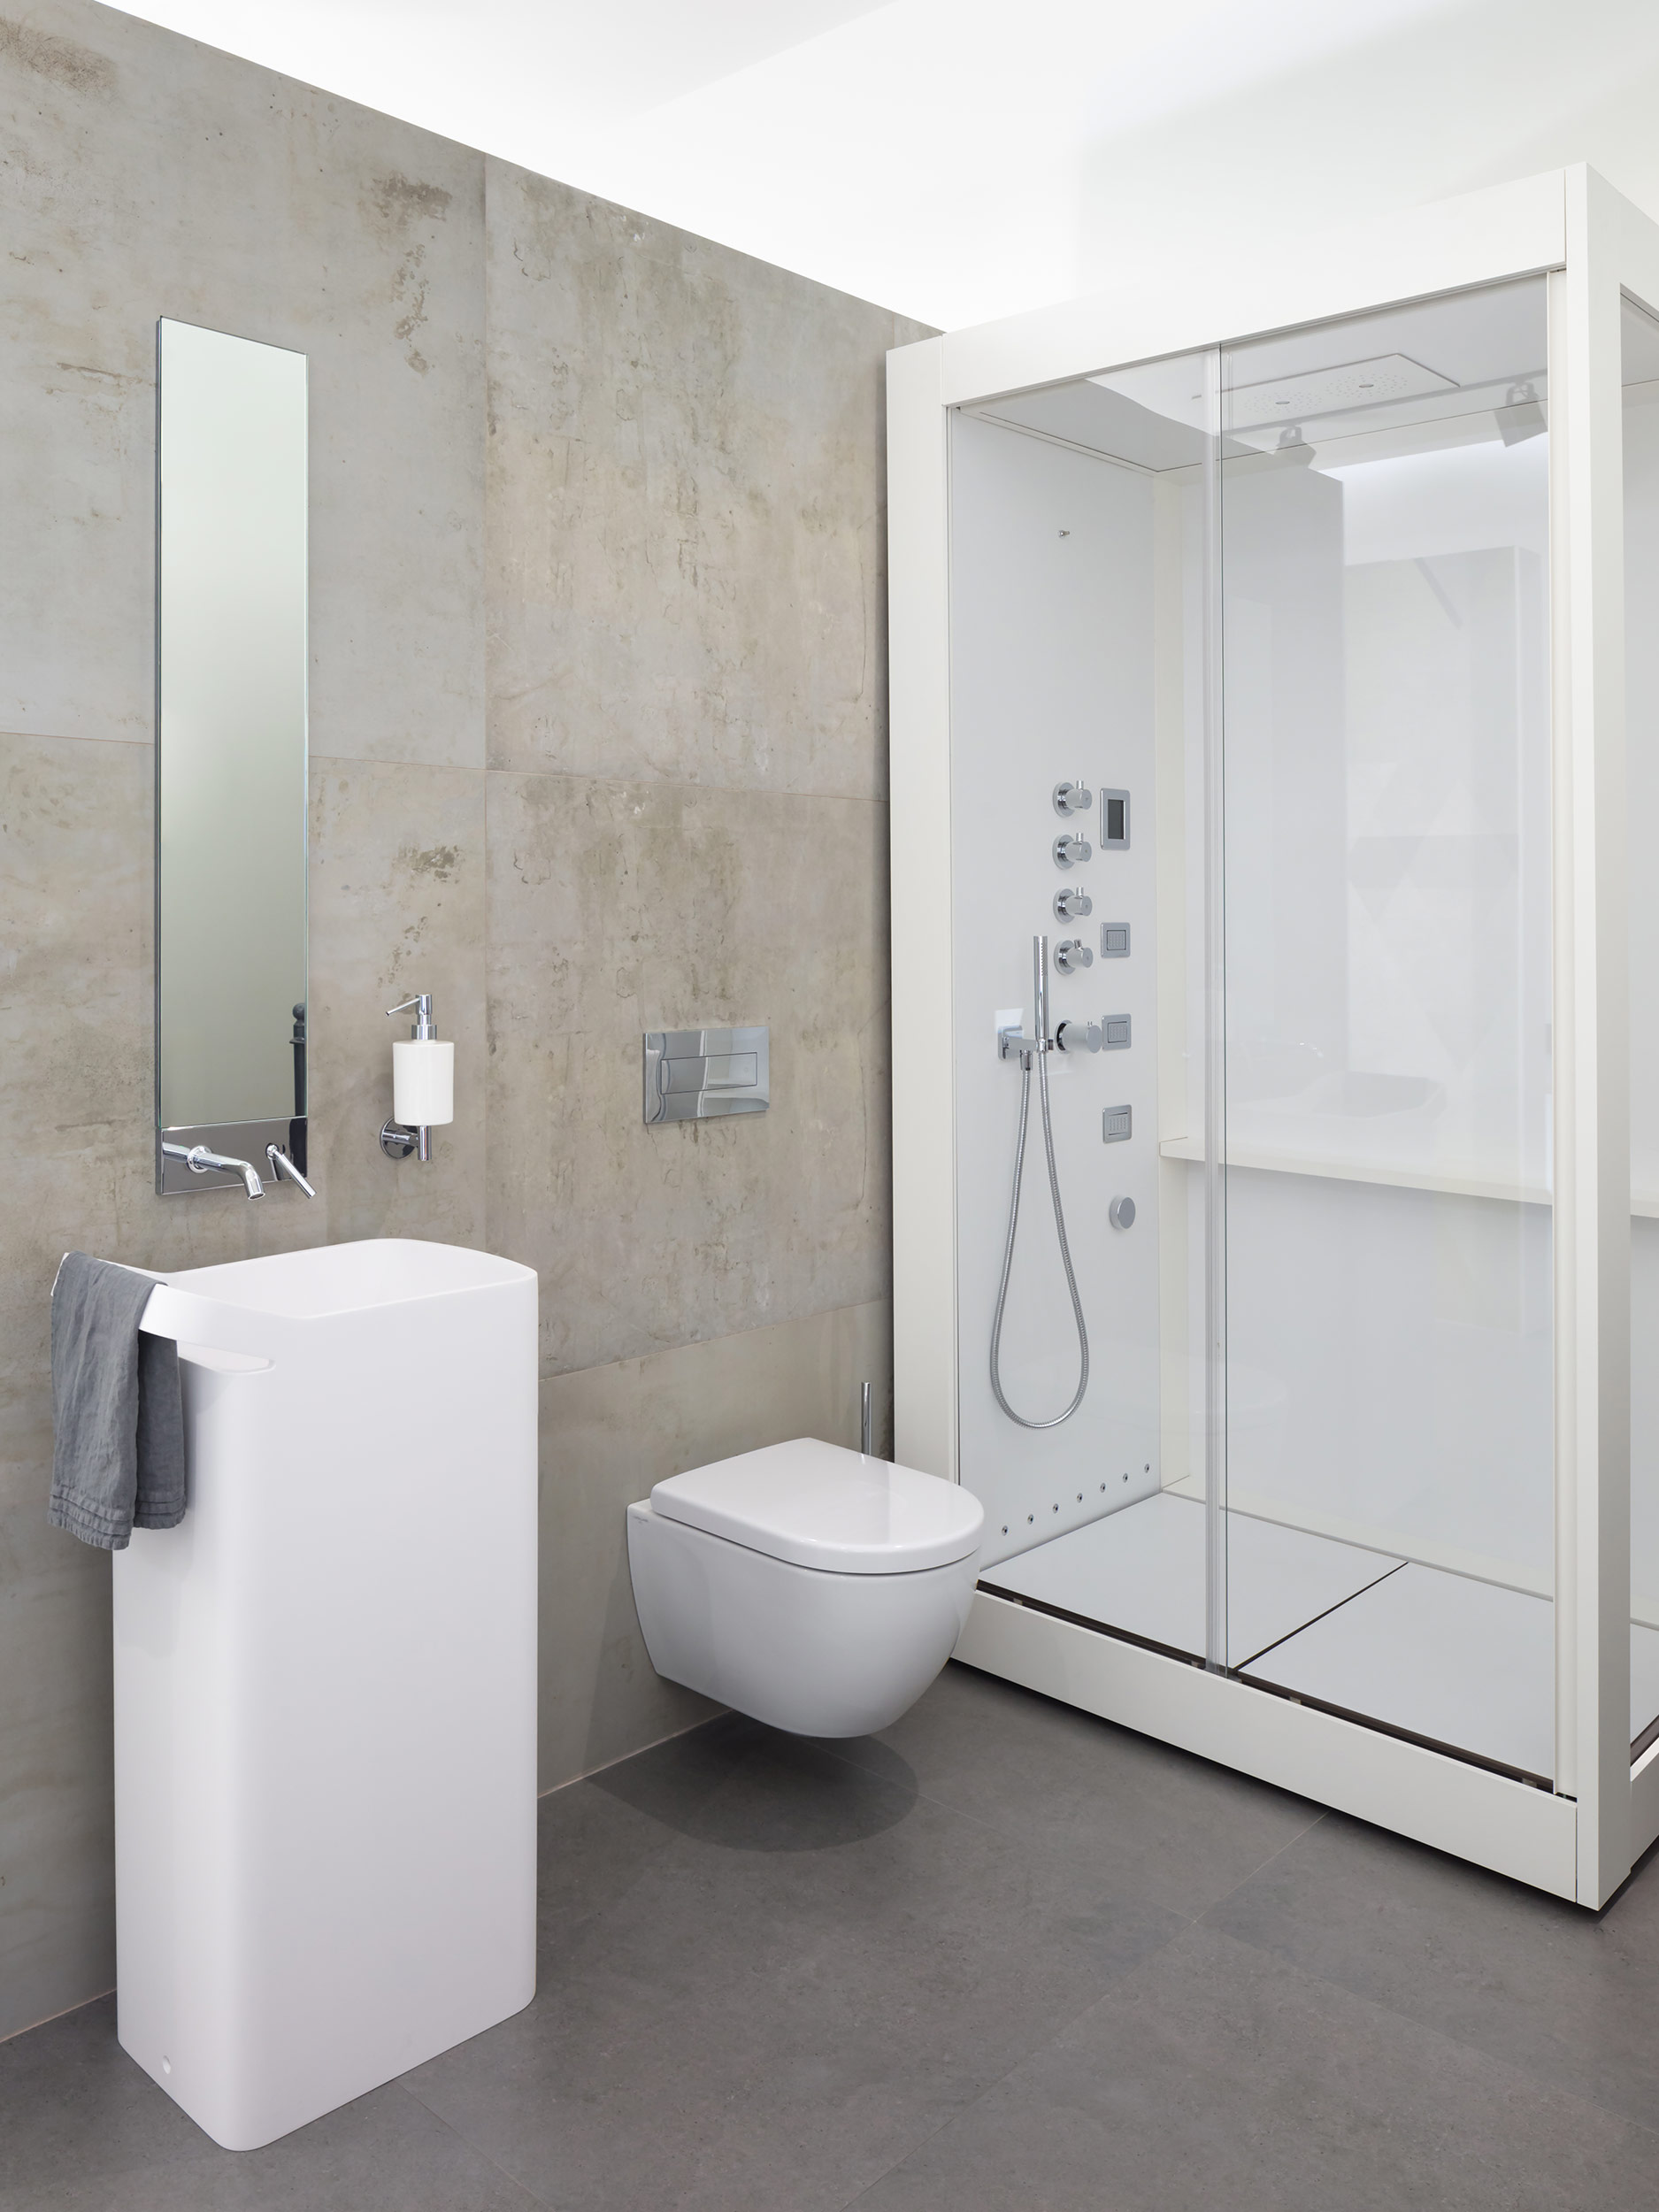 West One Bathrooms Notting Hill Showroom Westbourne Park Road 1a